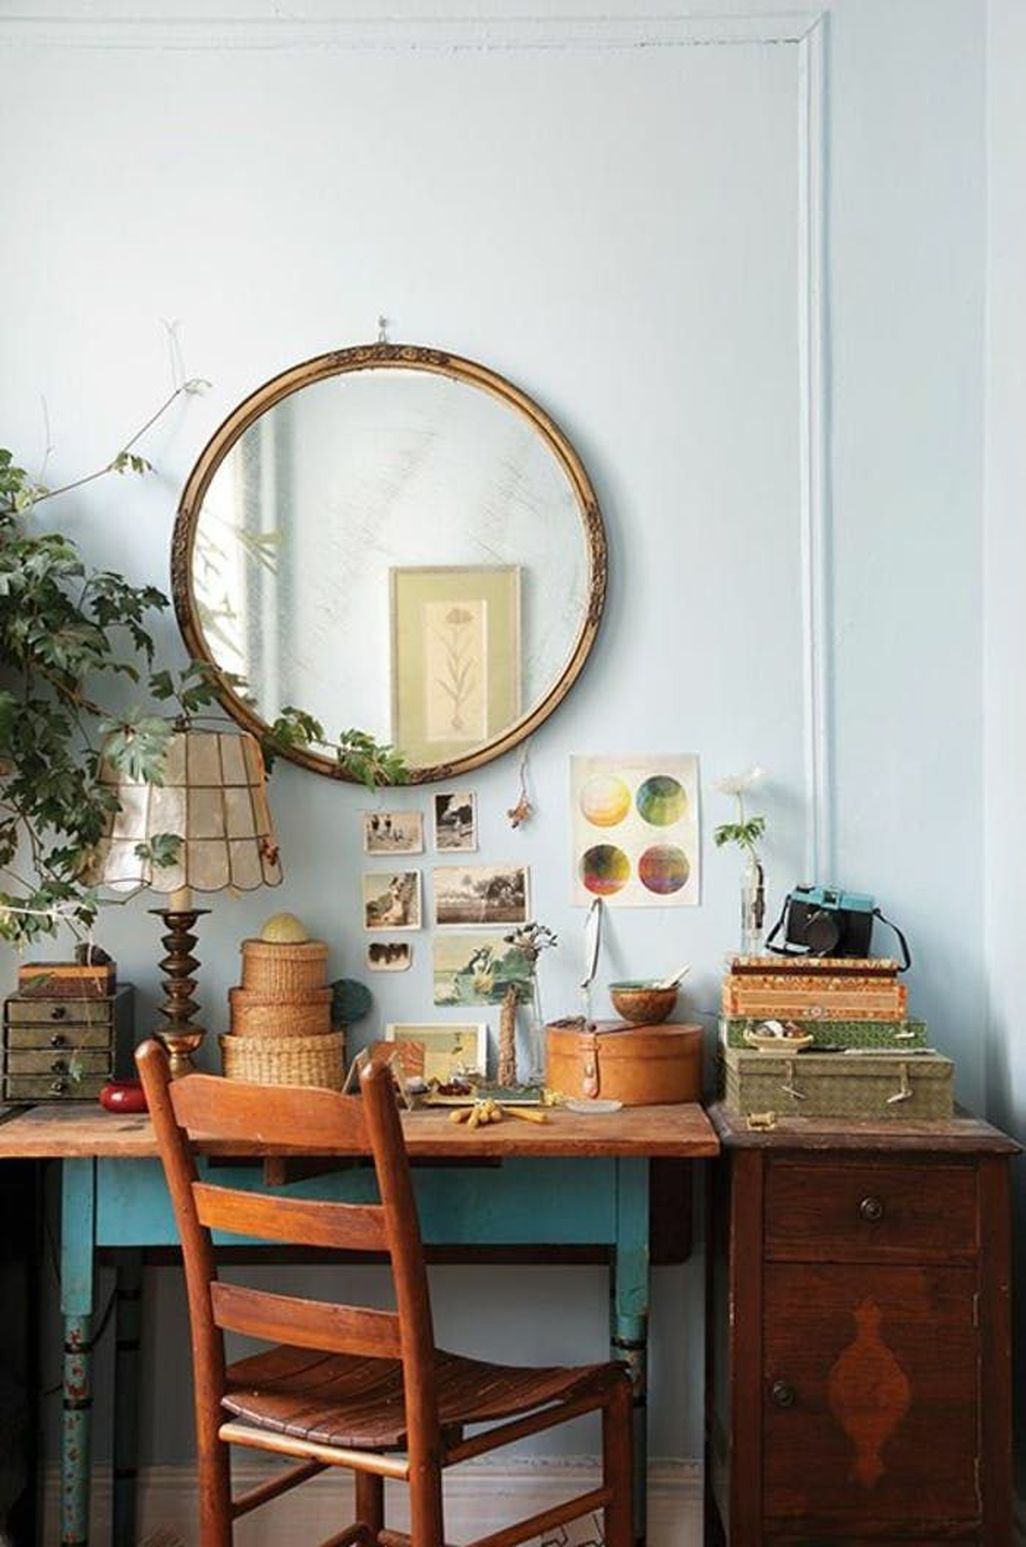 Slow decorating: A sustainable alternative to the fast-paced culture | Vinterior